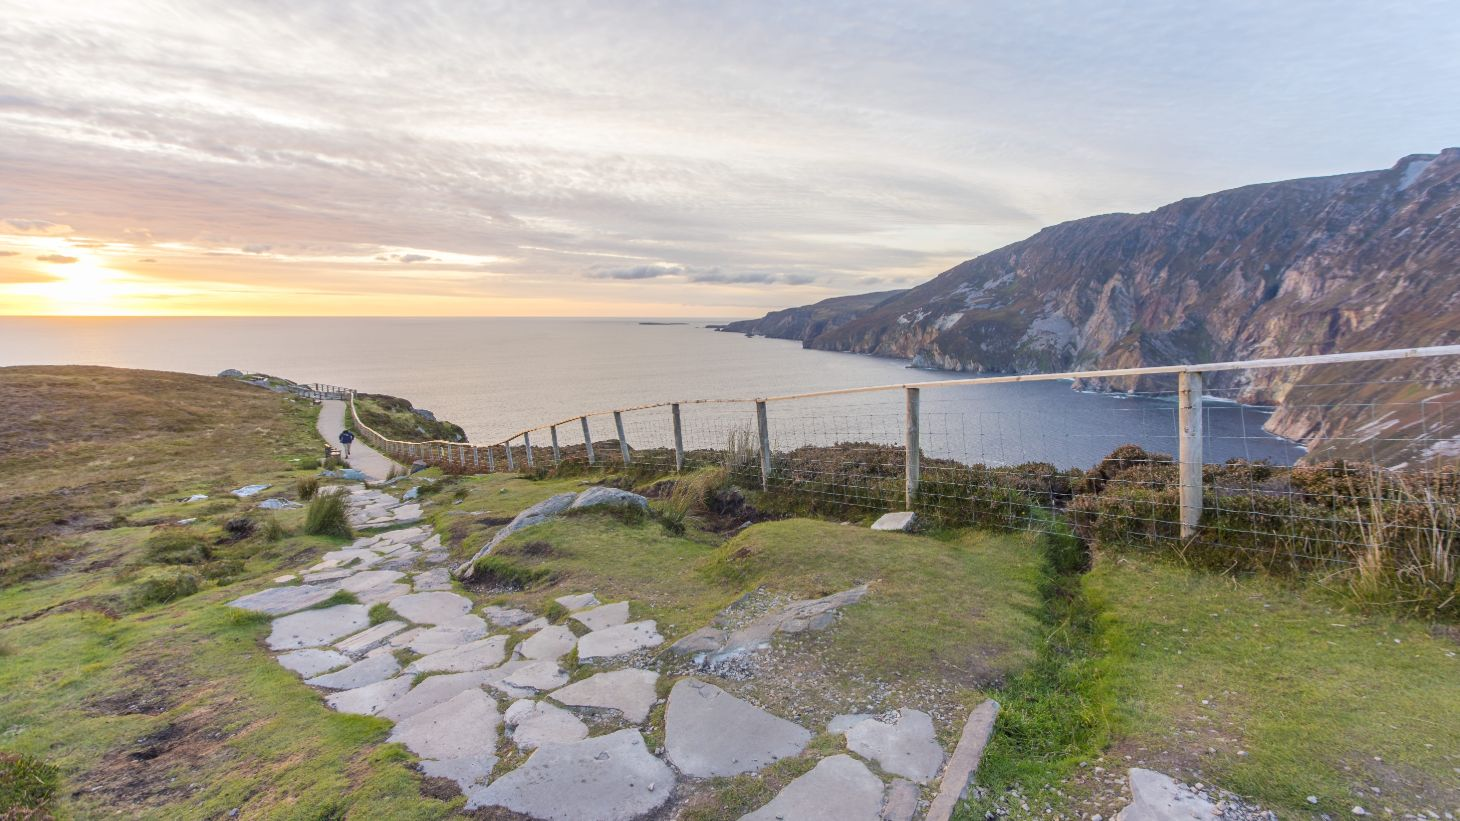 Discover the Sliabh Liag Cliffs on the south-west coast of Co. Donegal.